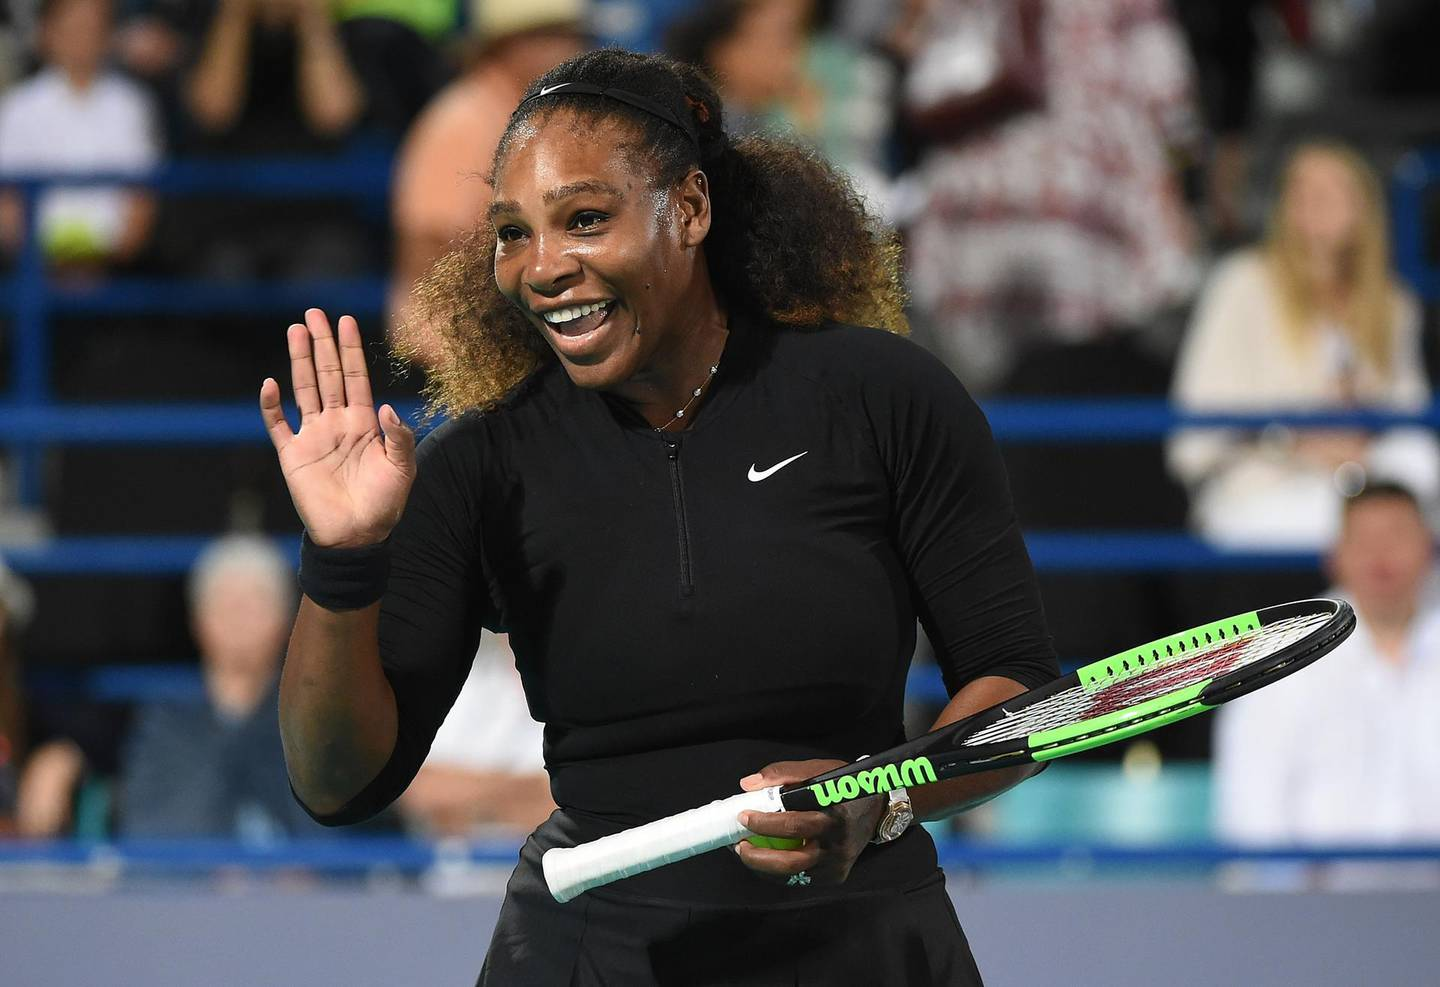 ABU DHABI, UNITED ARAB EMIRATES - DECEMBER 30:  Serena Williams of United States smiles during her Ladies Final match against Jelena Ostapenko of Latvia on day three of the Mubadala World Tennis Championship at International Tennis Centre Zayed Sports City on December 30, 2017 in Abu Dhabi, United Arab Emirates.  (Photo by Tom Dulat/Getty Images) *** BESTPIX ***